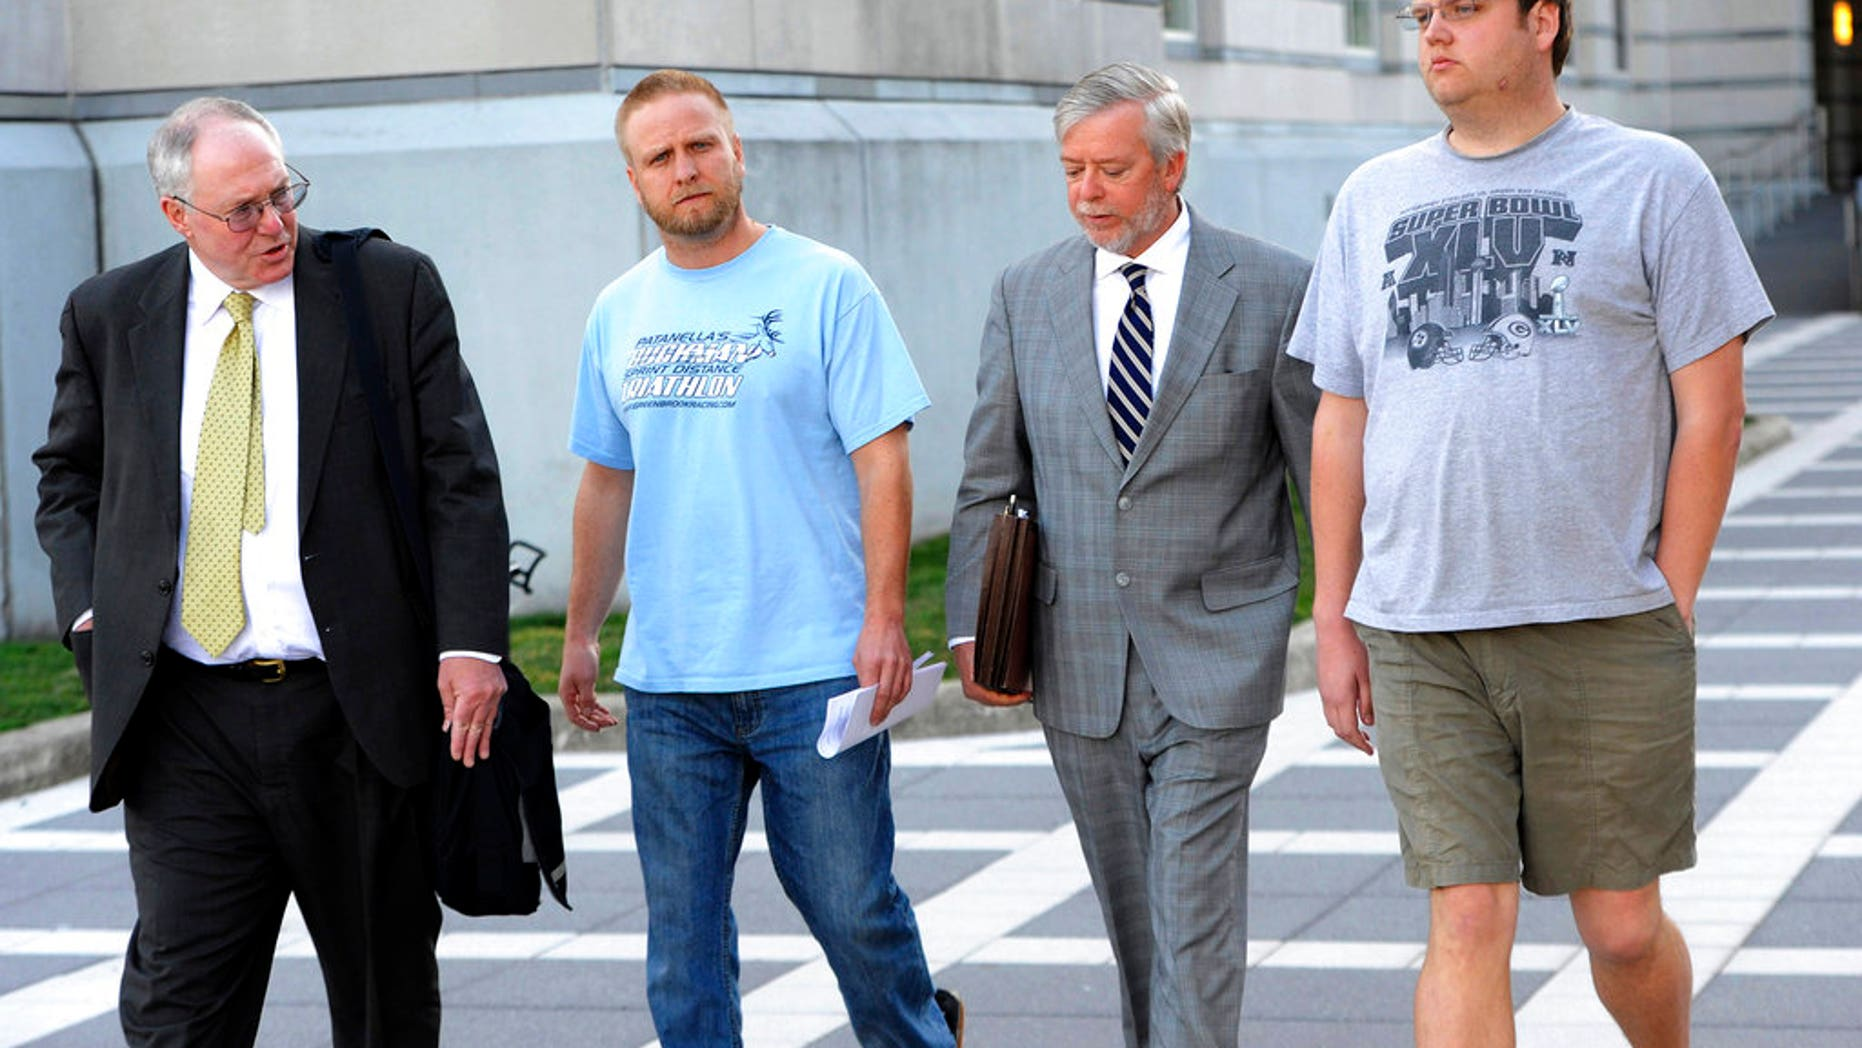 David Nicoll, second from left, and brother Scott Nicoll, right, leave a Newark, N.J., courthouse, accompanied by their representatives, in 2013.